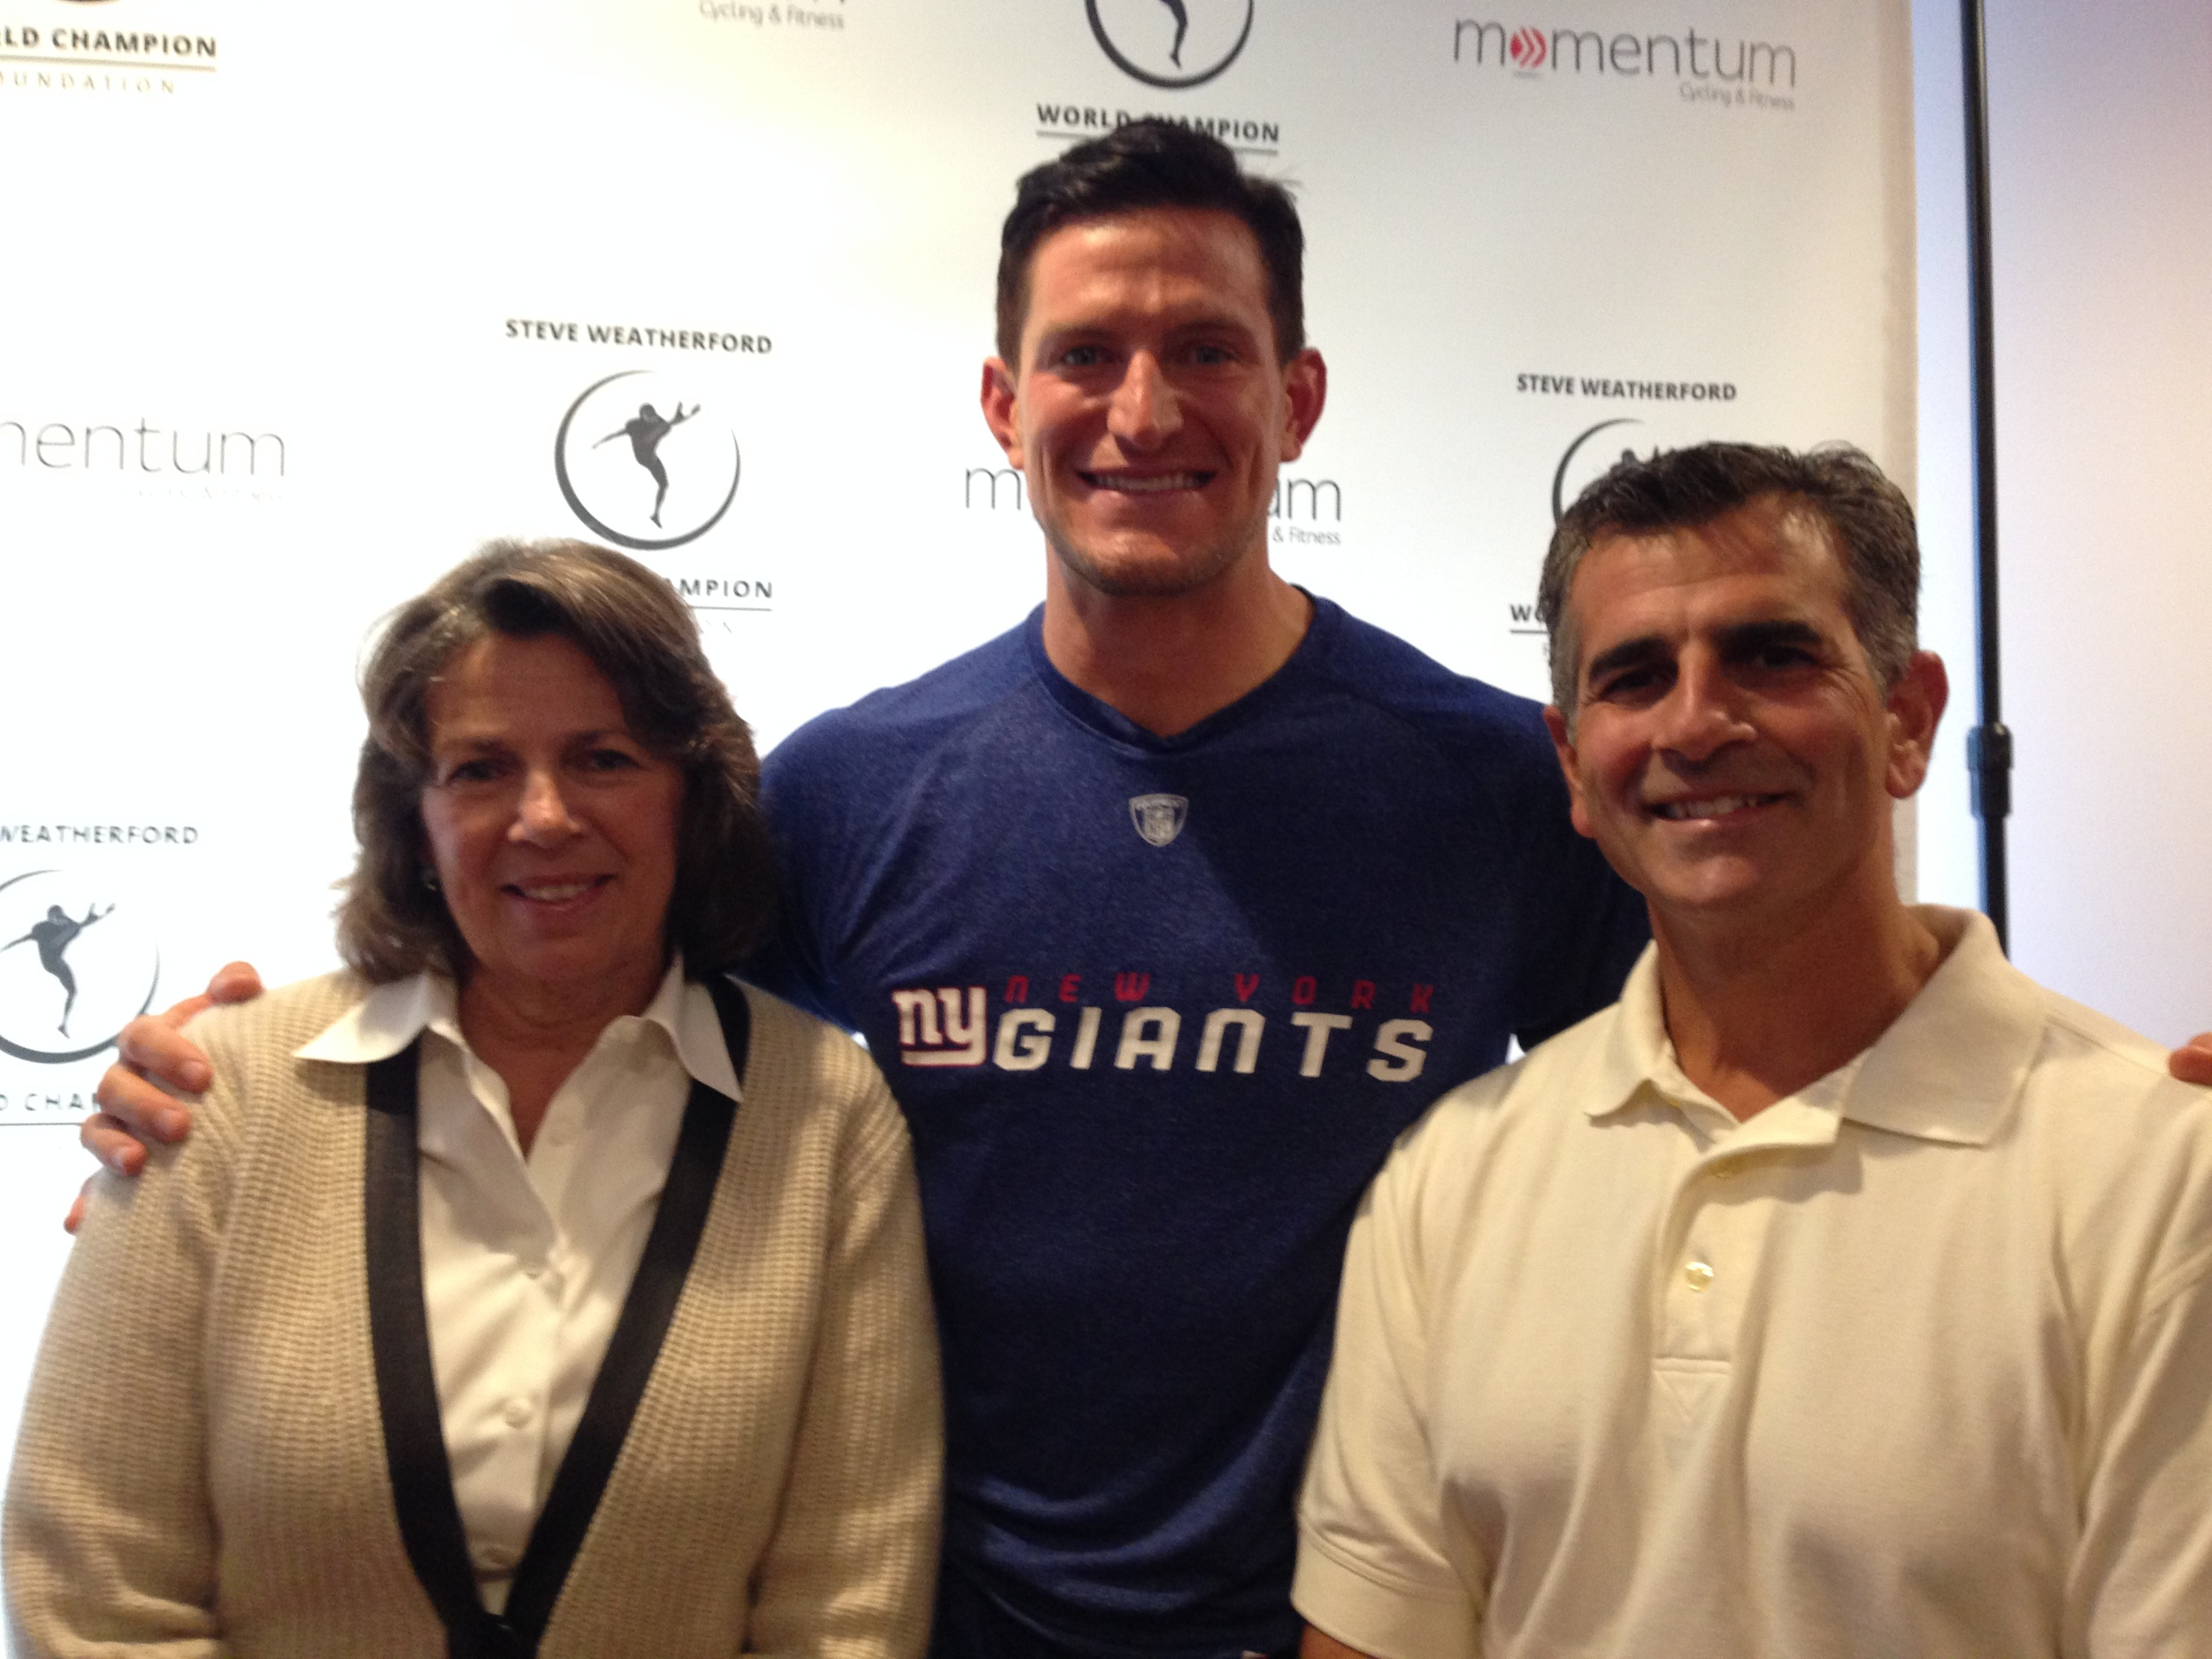 Dr. Rubino and Ellen Dickson at the ribbon cutting ceremony for Momentum Cycling & Fitness on Saturday, September 13th. NY Giants punter Steve Weatherford was there for the festivities.